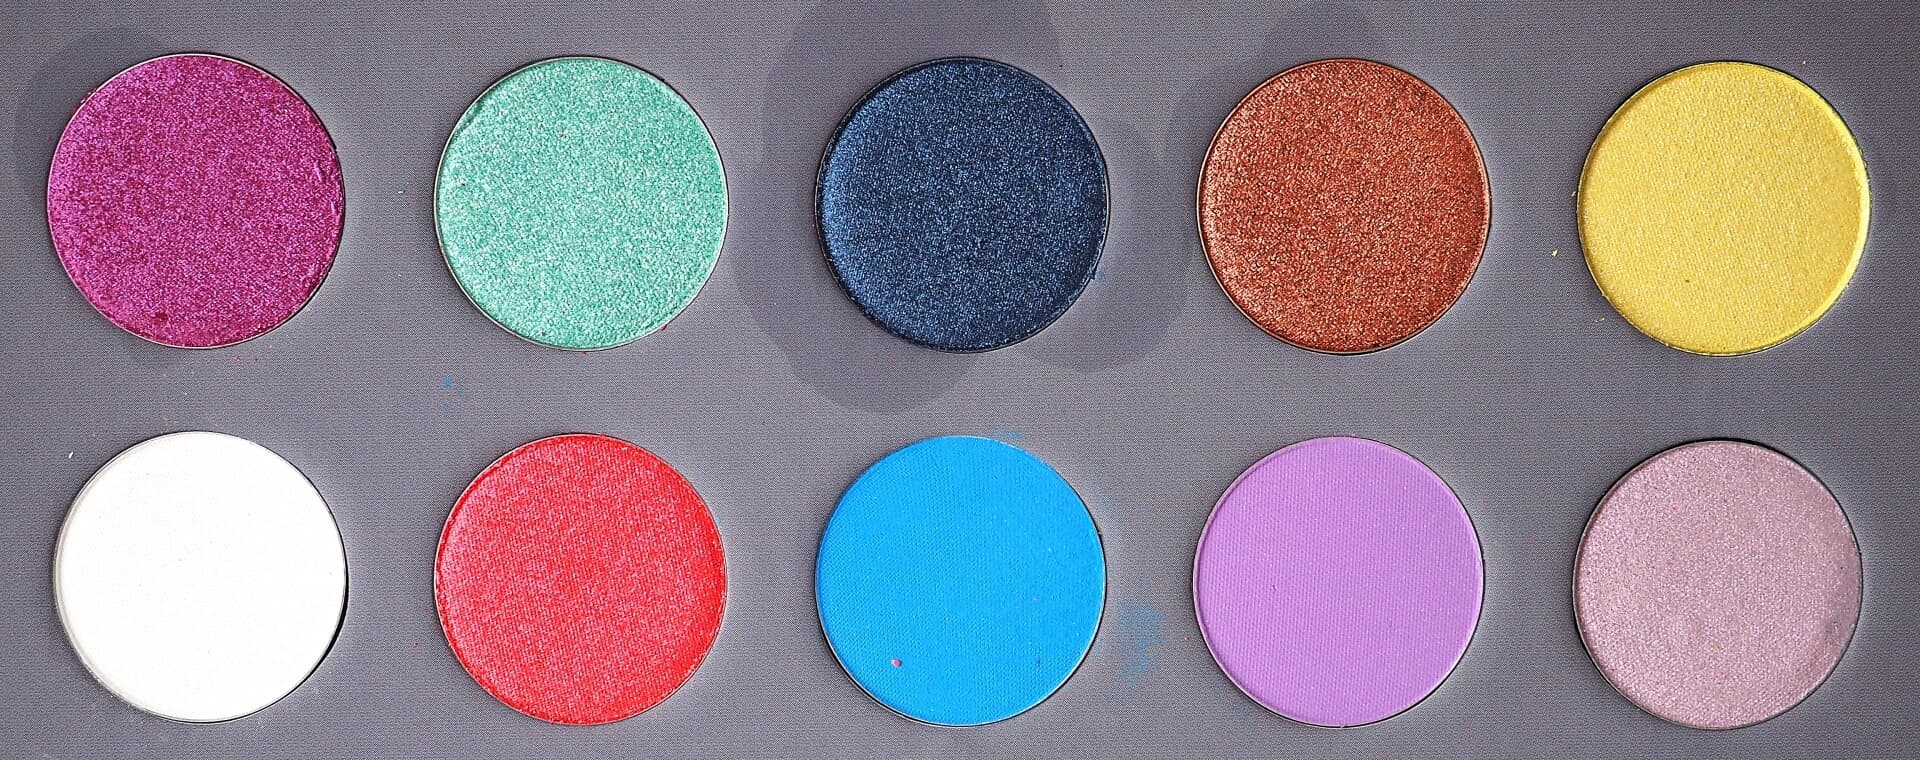 TEST AFFECT PROVOCATION EYESHADOW PALETTE